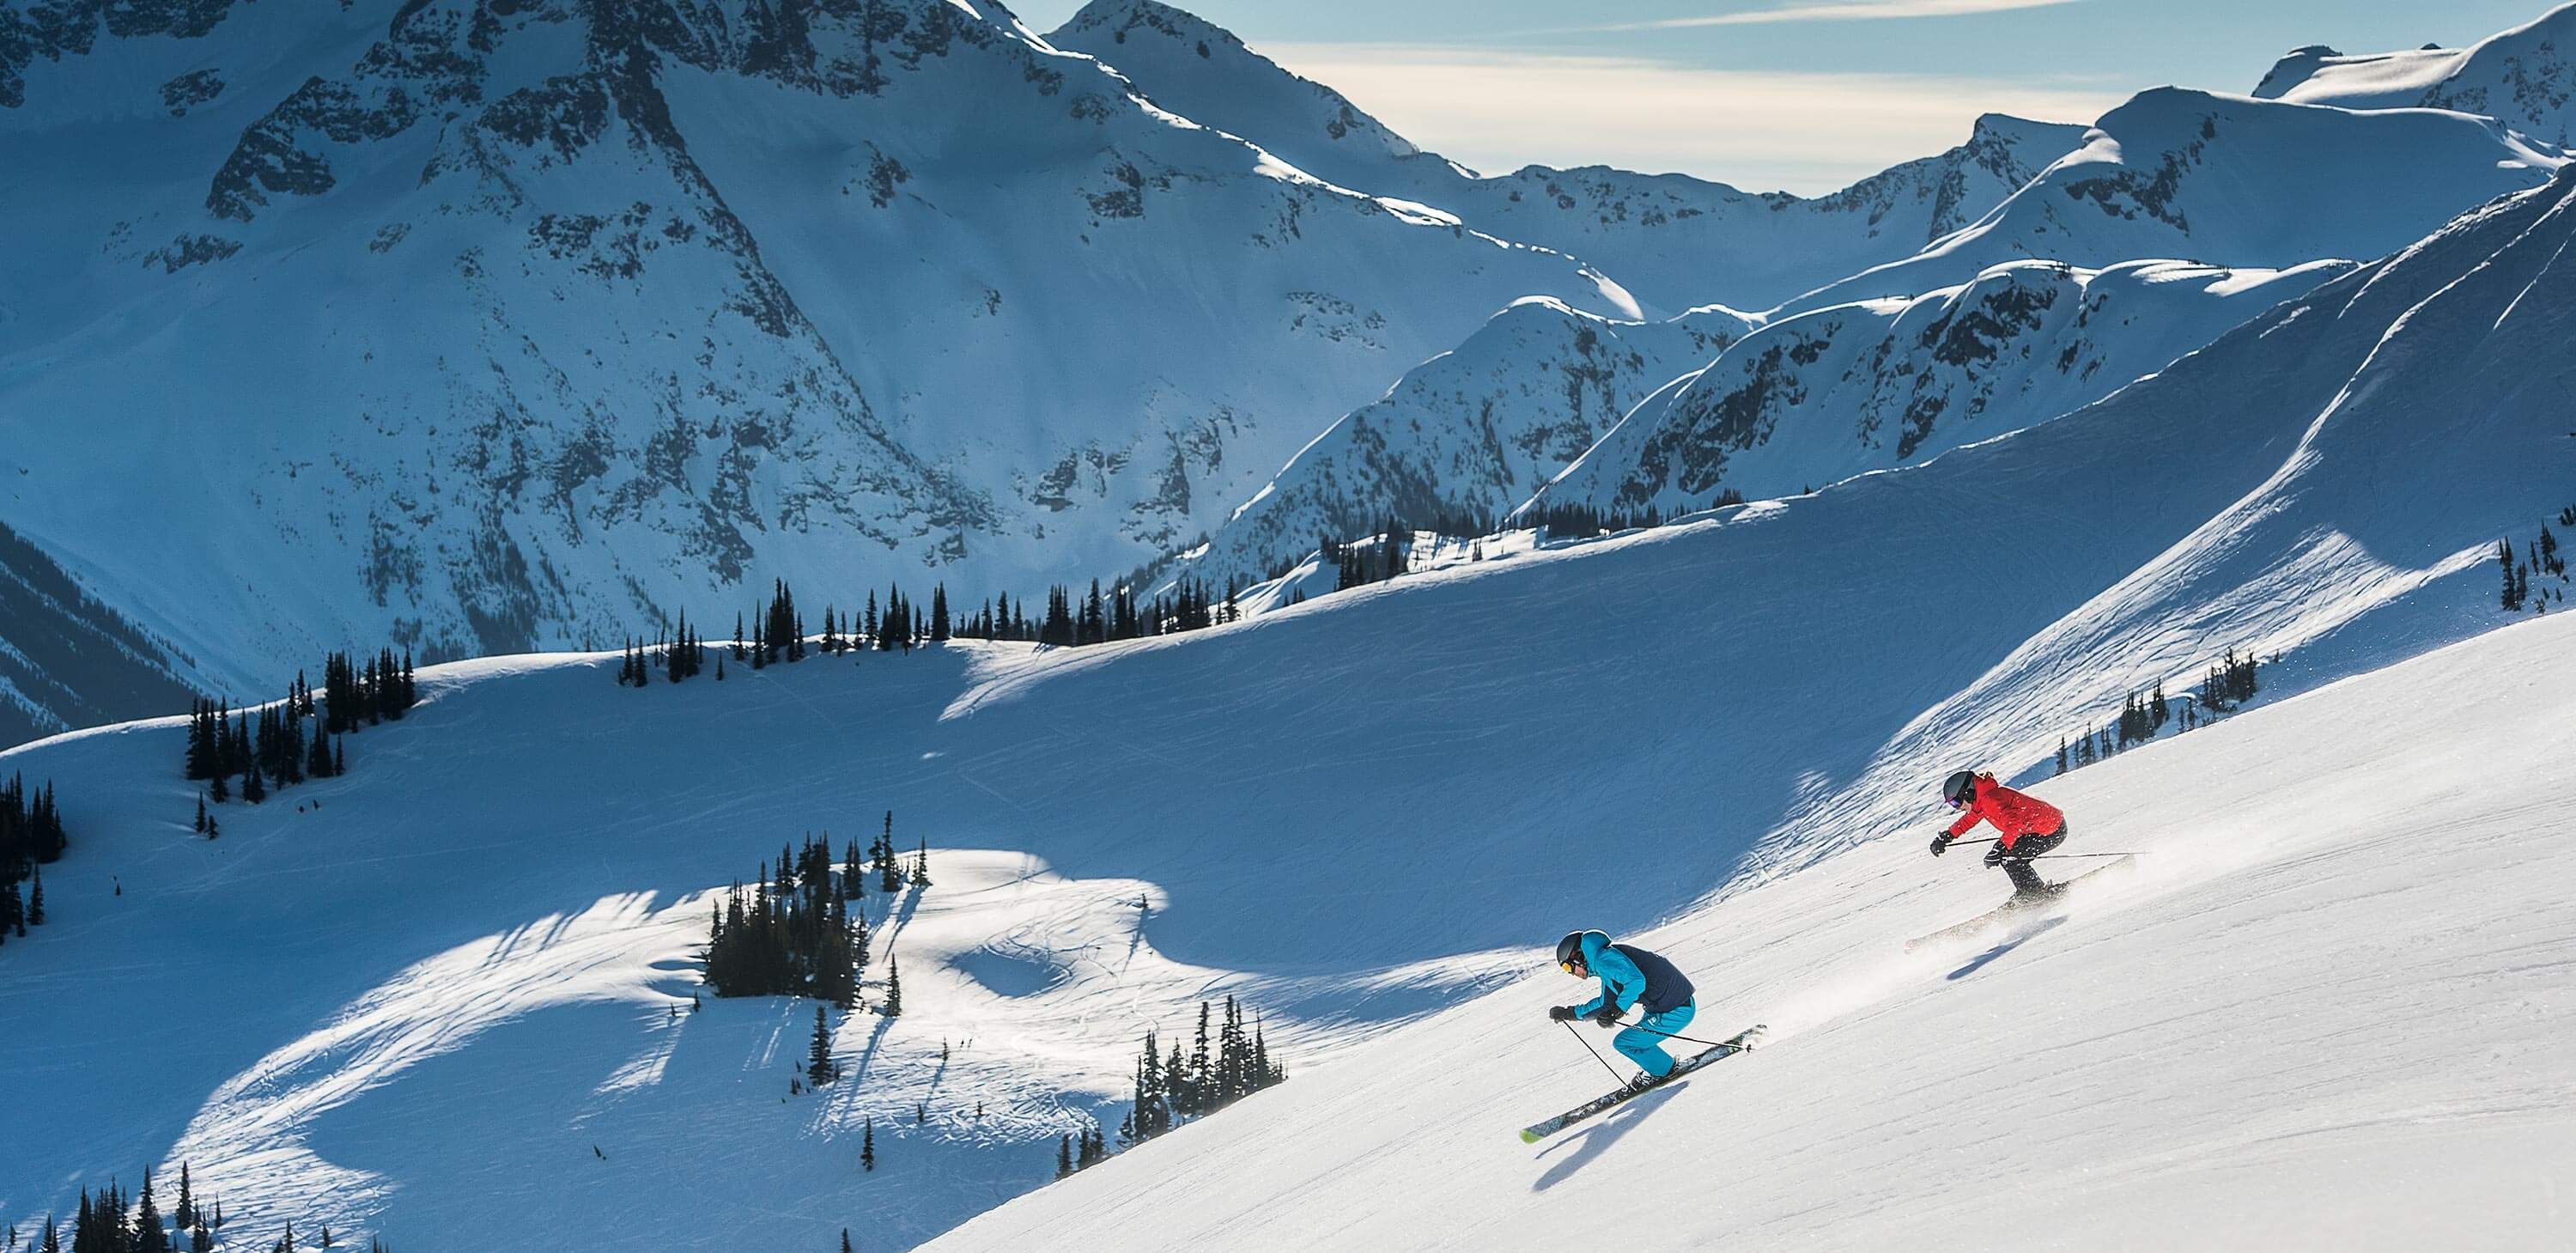 Skiing in Whistler, Canada